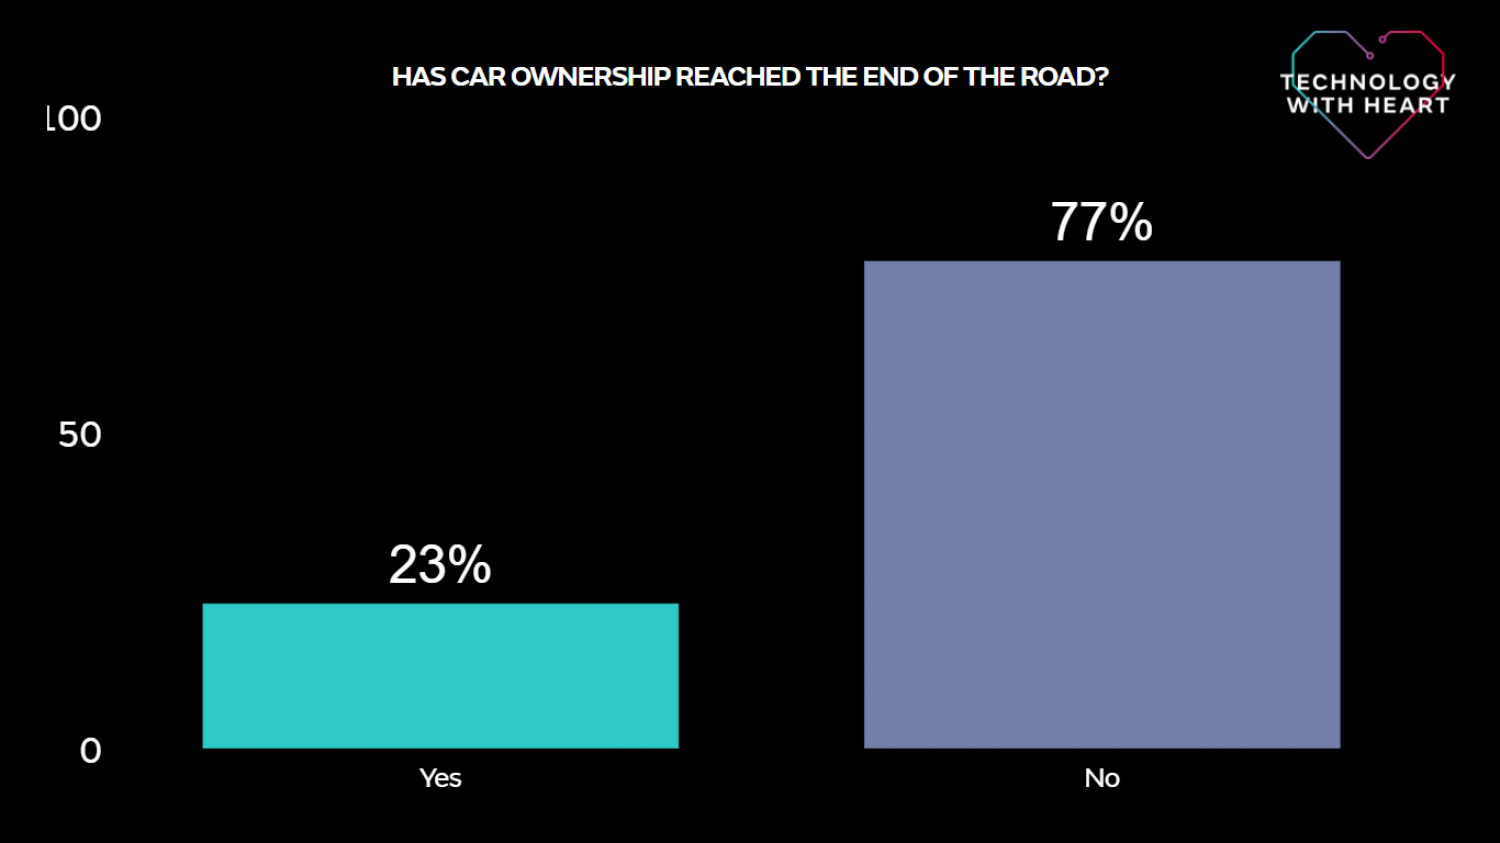 Has car ownership reached the end of the road